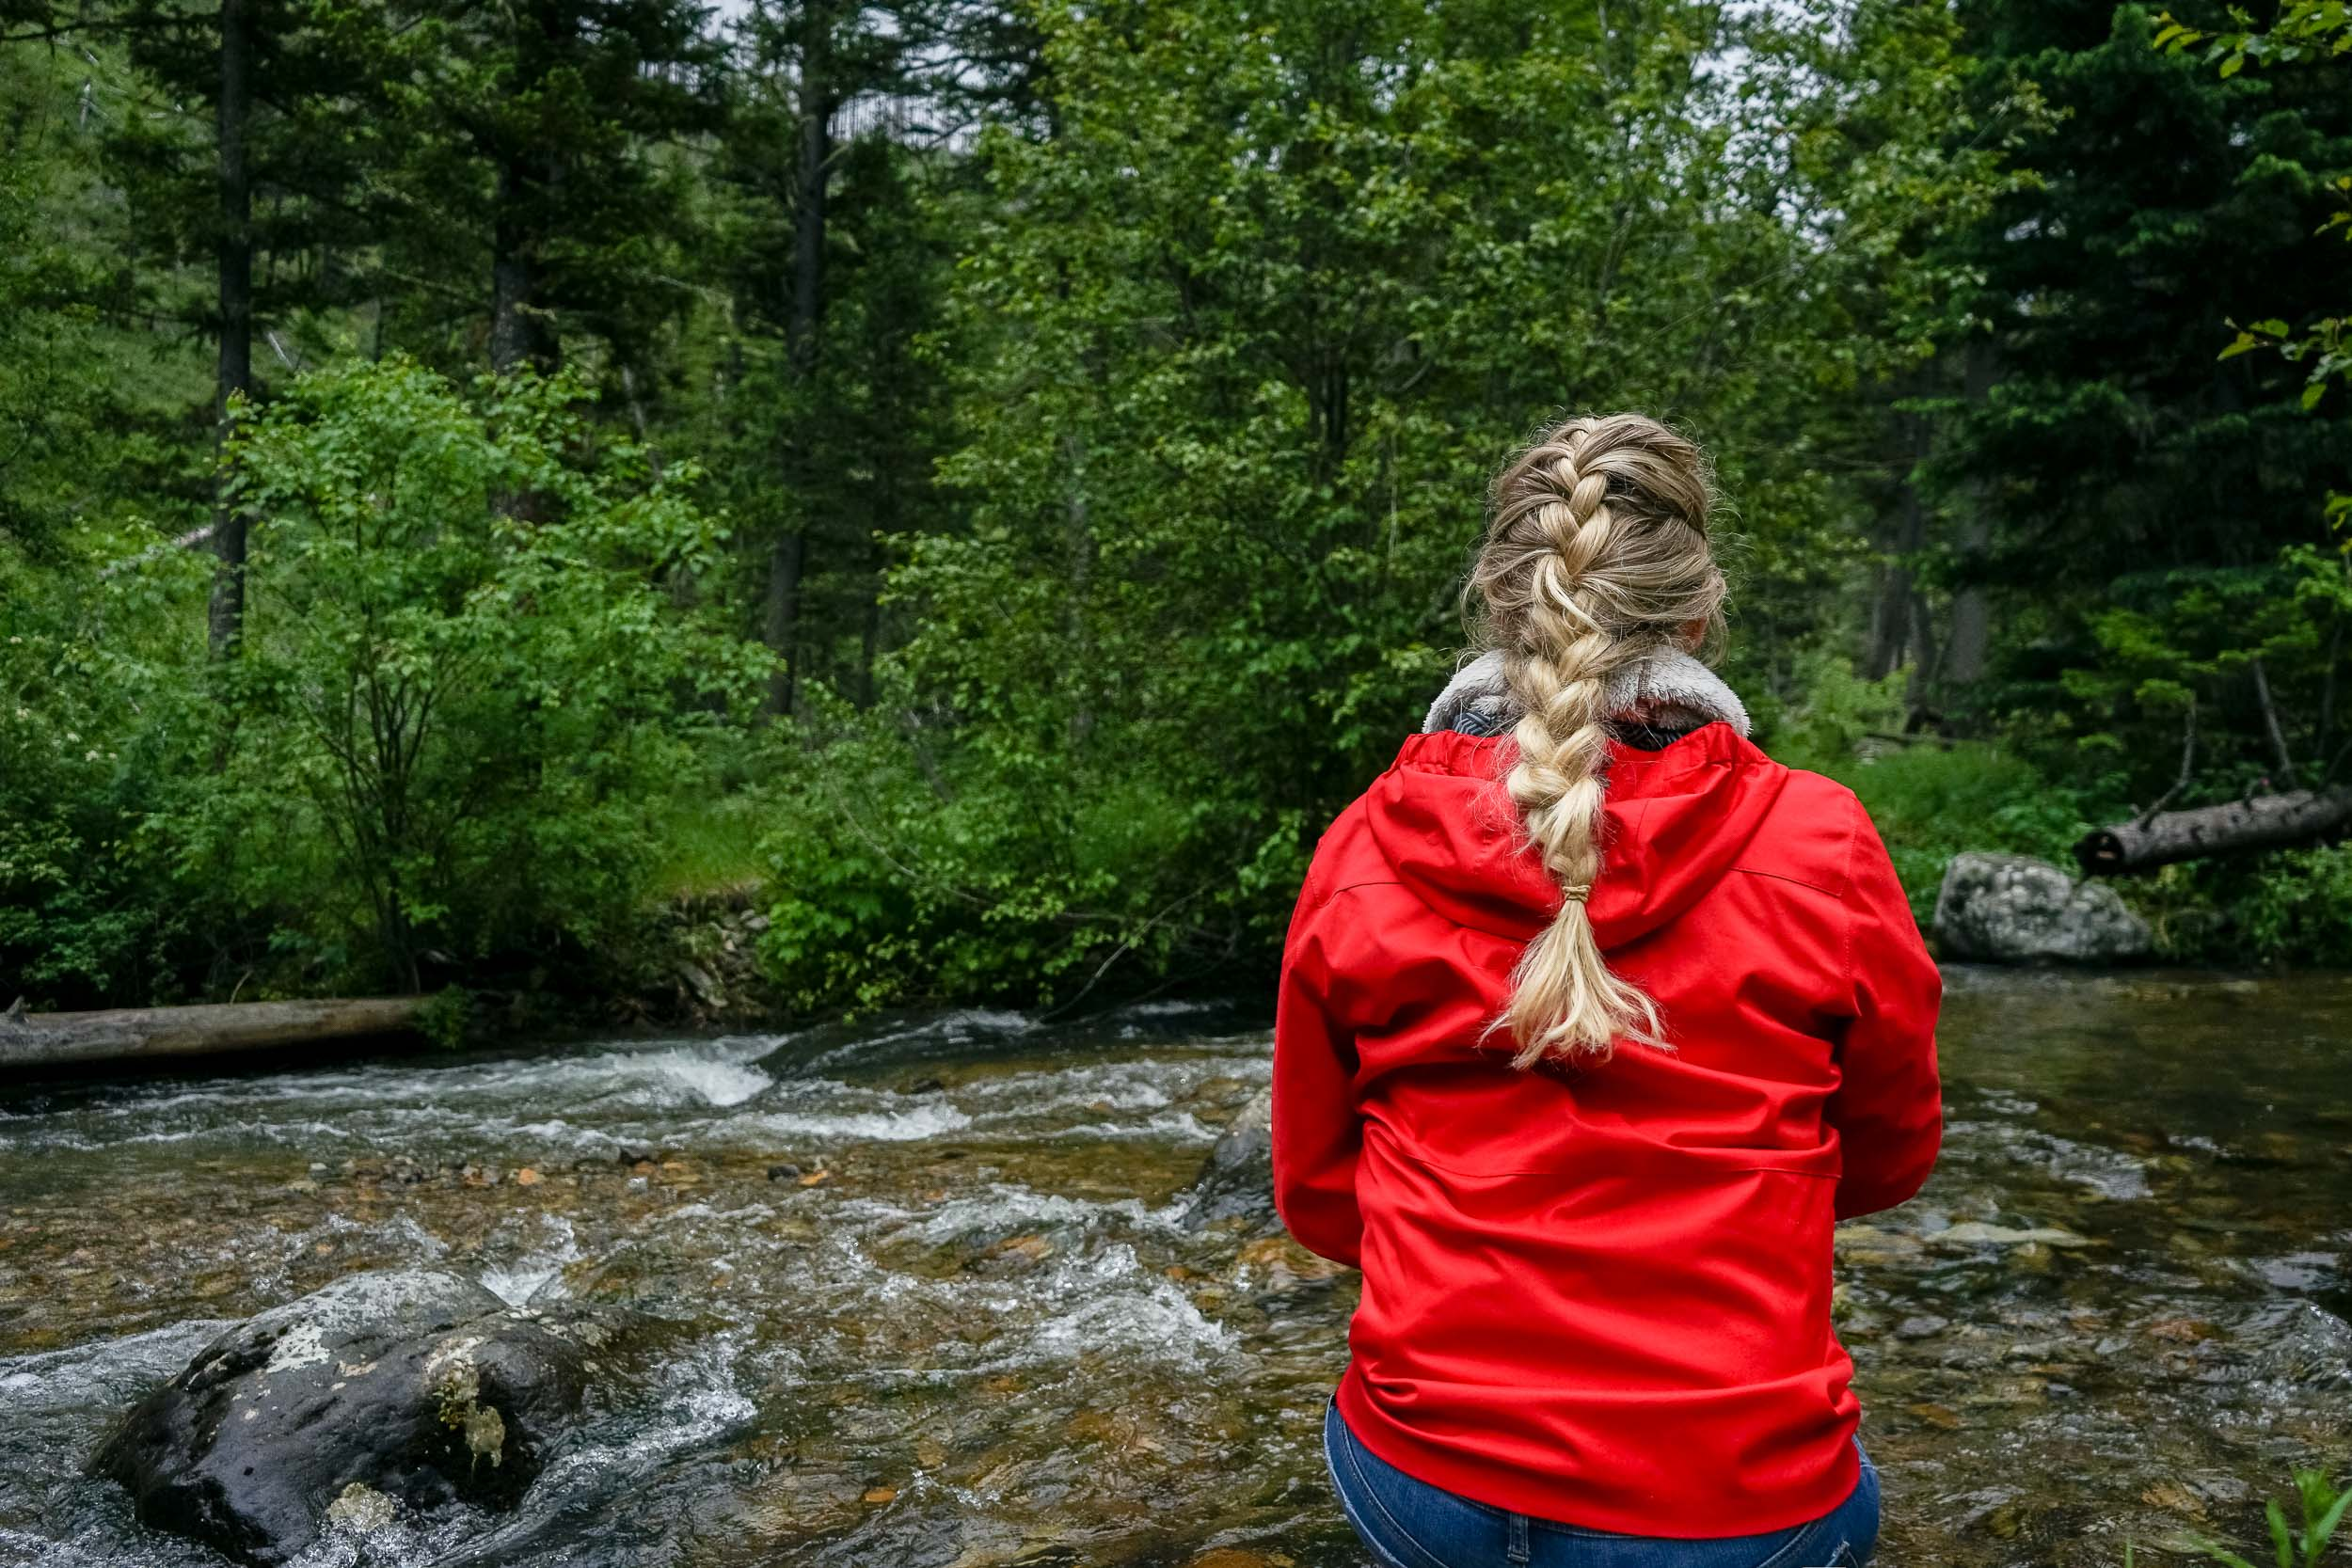 Adorable hiking hair styles that are quick and easy to do yourself.